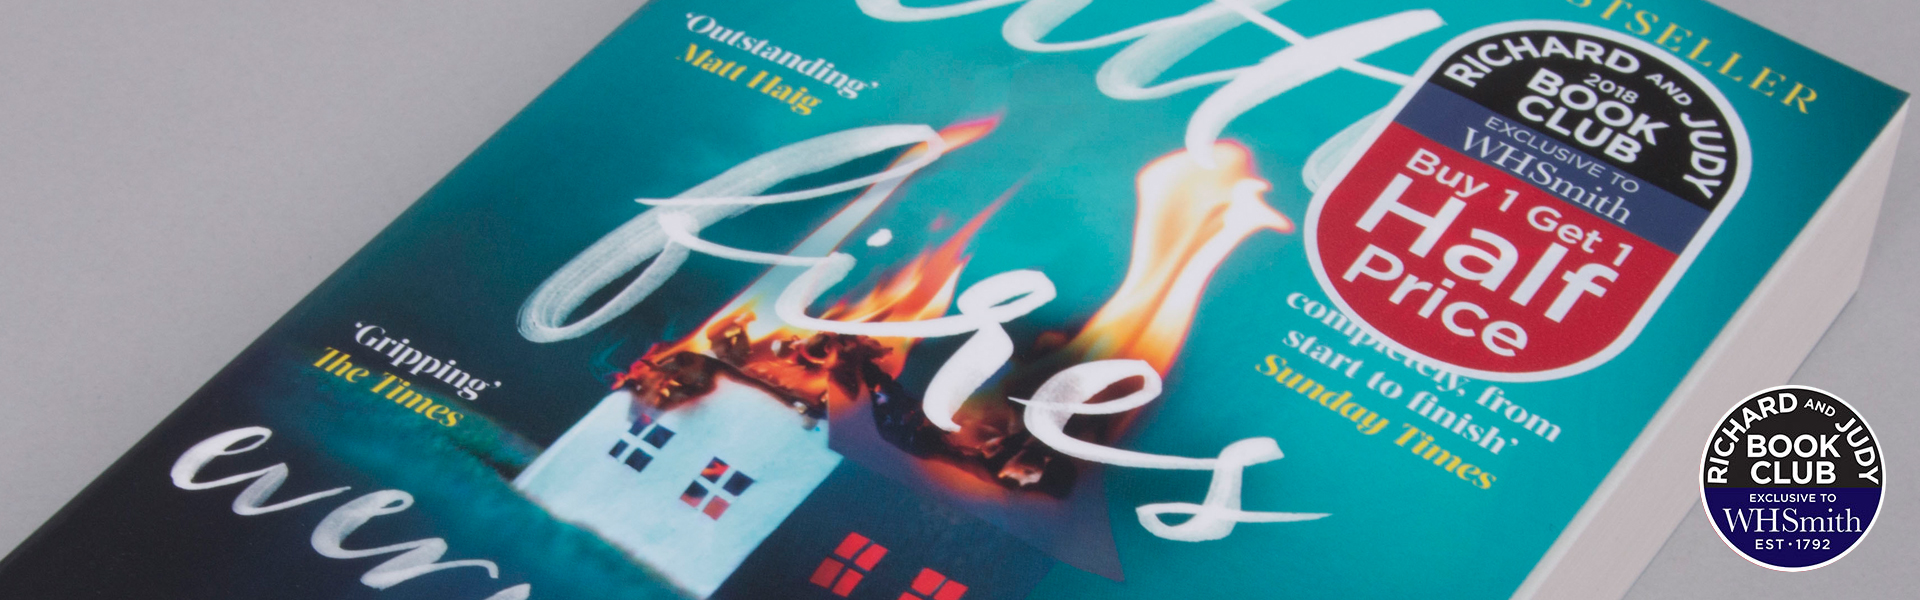 Celeste Ng: On Researching Little Fires Everywhere